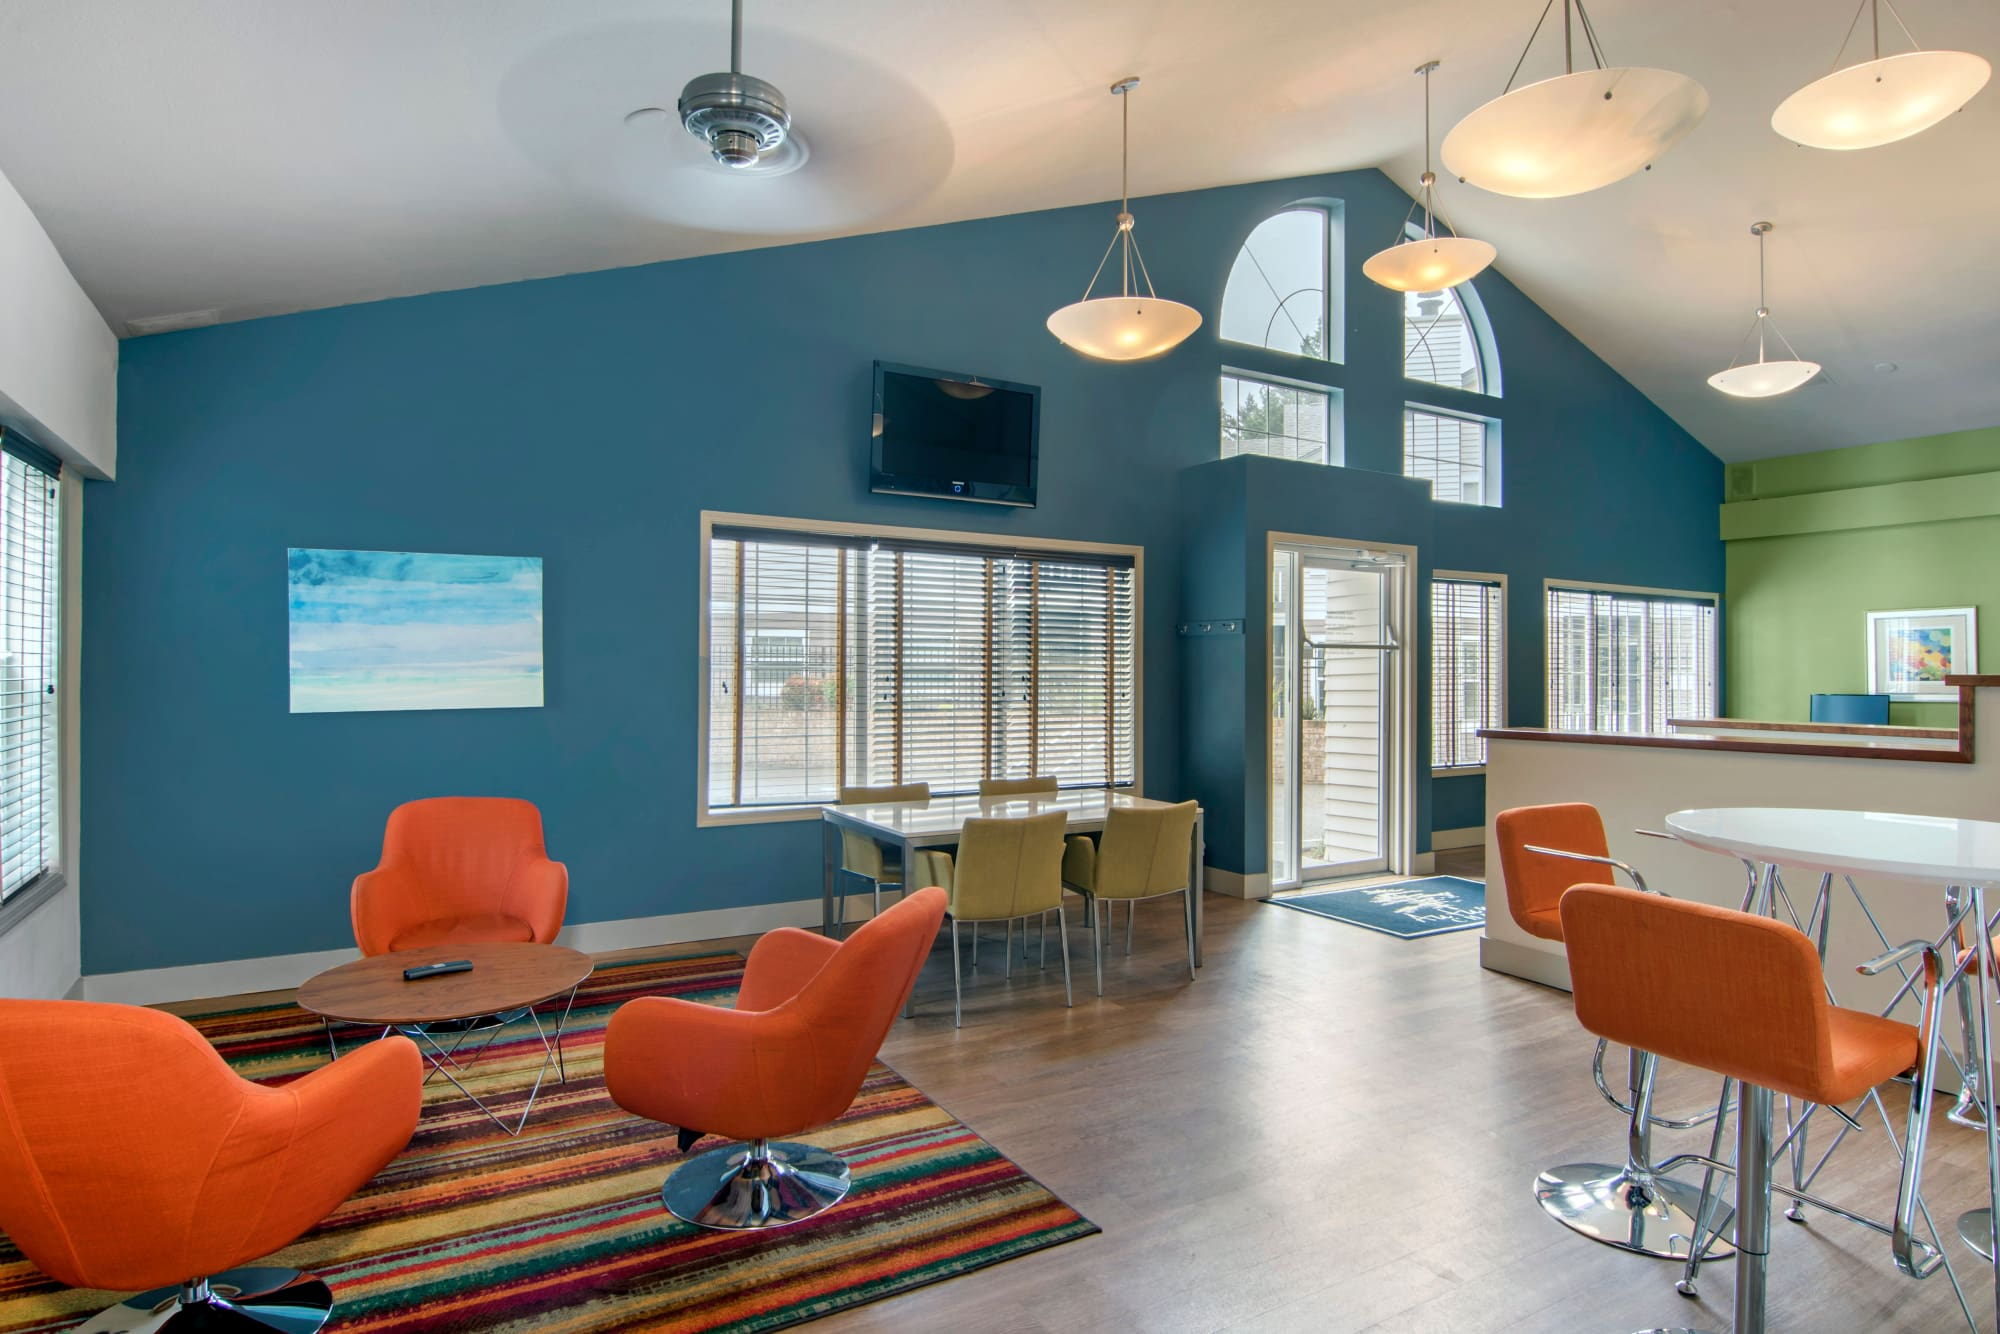 interior clubhouse lounge area